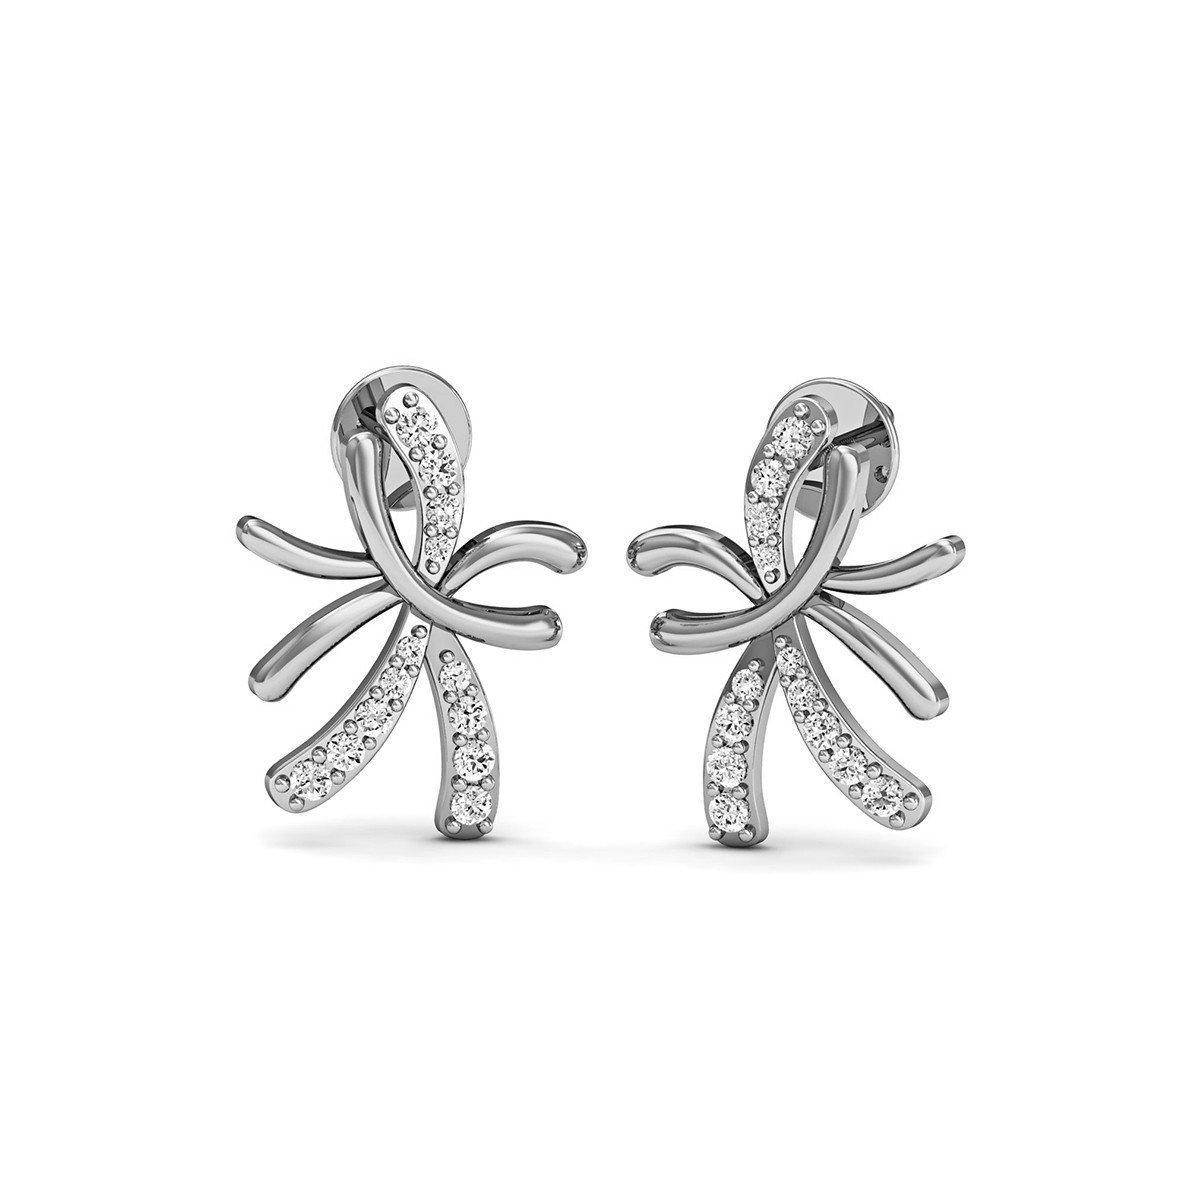 Diamoire Jewels 10kt White Gold and Diamond Floral Pave Earrings 4IaMxLx9